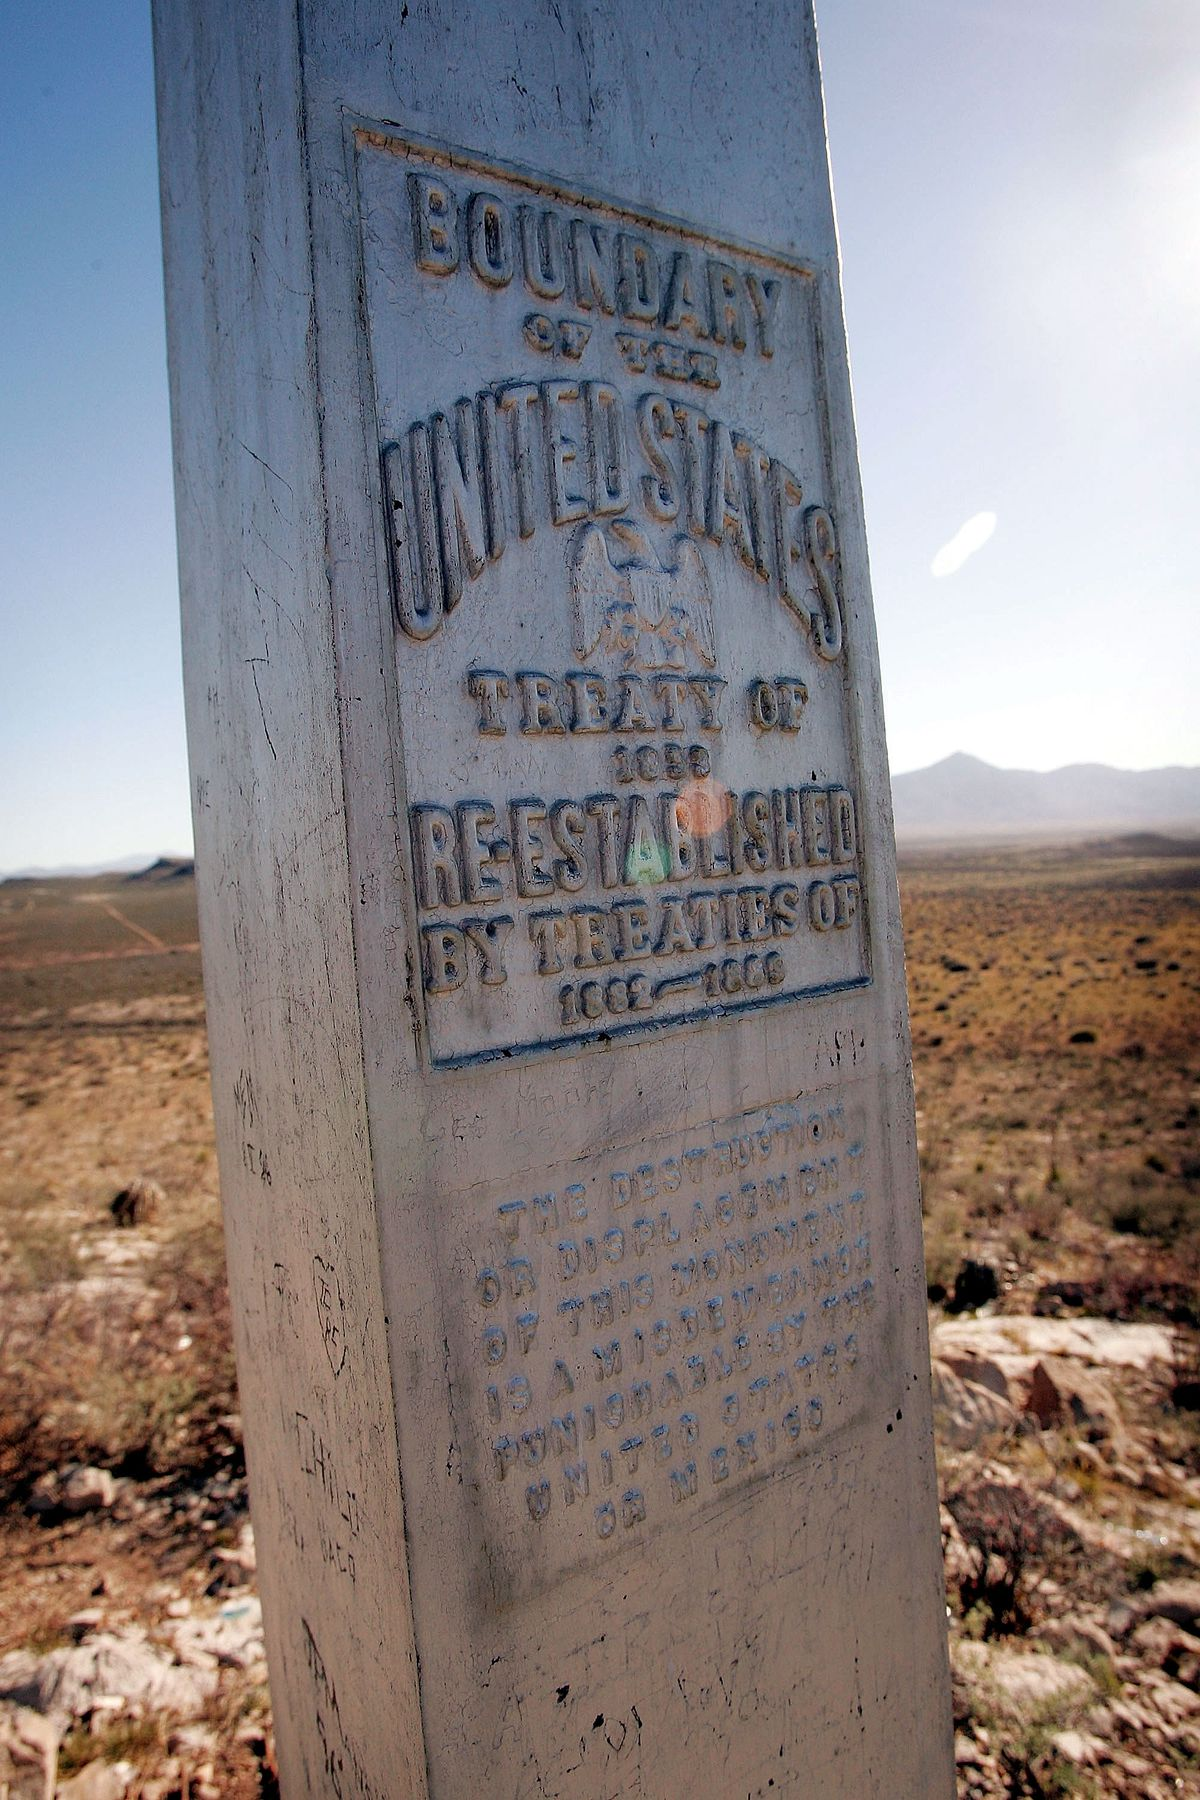 SIERRA VISTA, AZ - APRIL 1: An obelisk marks the United States/Mexican border April 1, 2005 near Sierra Vista, Arizona. More than 1,000 volunteers from the Minuteman Project are expected to fan out across a 23 mile stretch on the Arizona side of the border to search for Illegal aliens who are making the trek into the United States from Mexico during April. (Photo by Scott Olson/Getty Images)